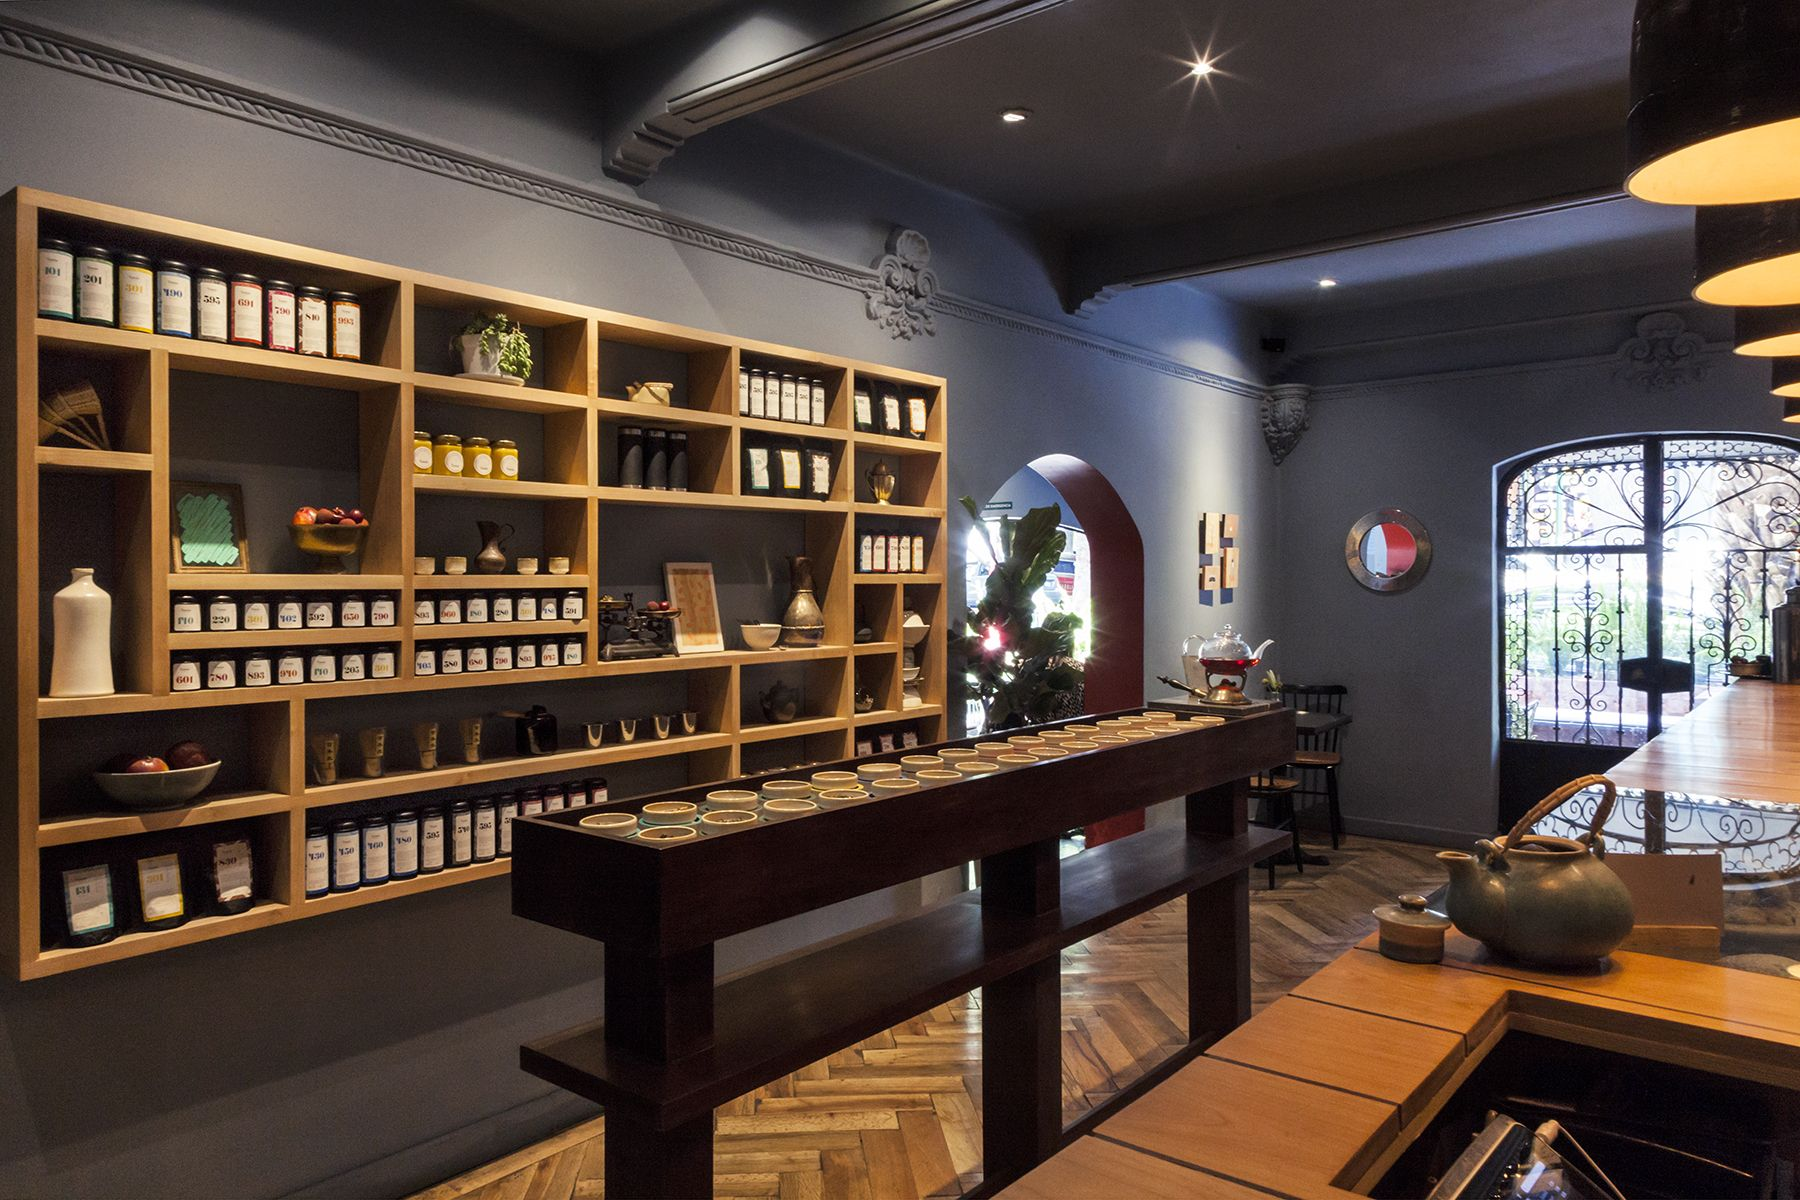 The living room is conceived as a space where people can feel at home, through simple furniture which combines materials such as wood, ceramic and skin- specifically designed to accentuate the product and its function. This space is complemented by illustrations depicting various related to tea culture, from cultivation to tasting items. This element is replicated through interventions in old paintings, proposing a balance between tradition and modernity.